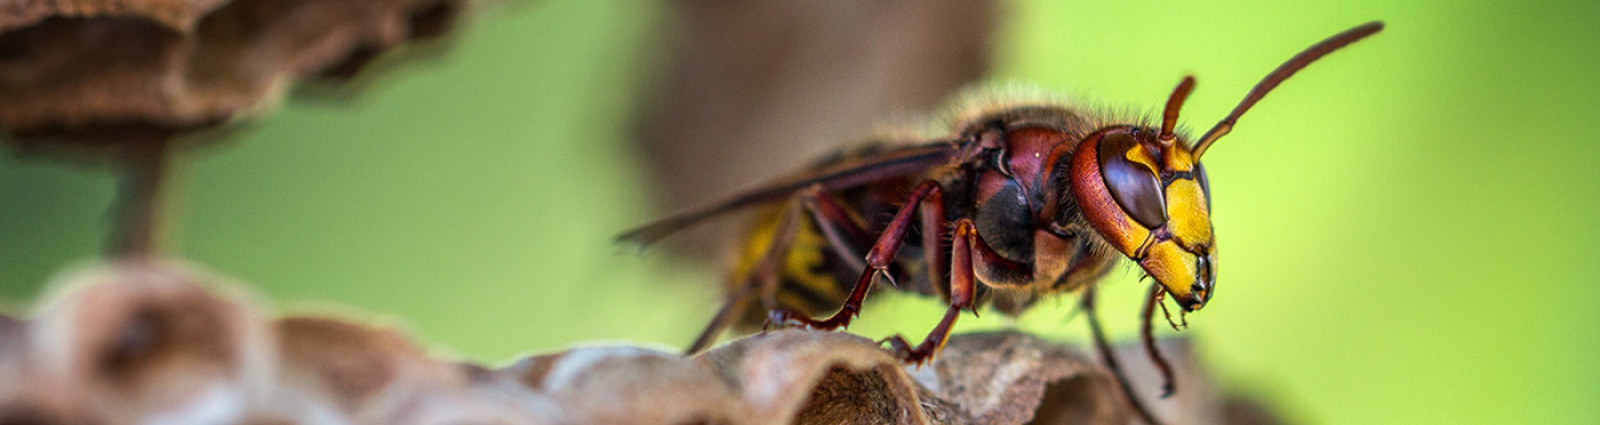 macro lens photography of yellow and red bee 928973